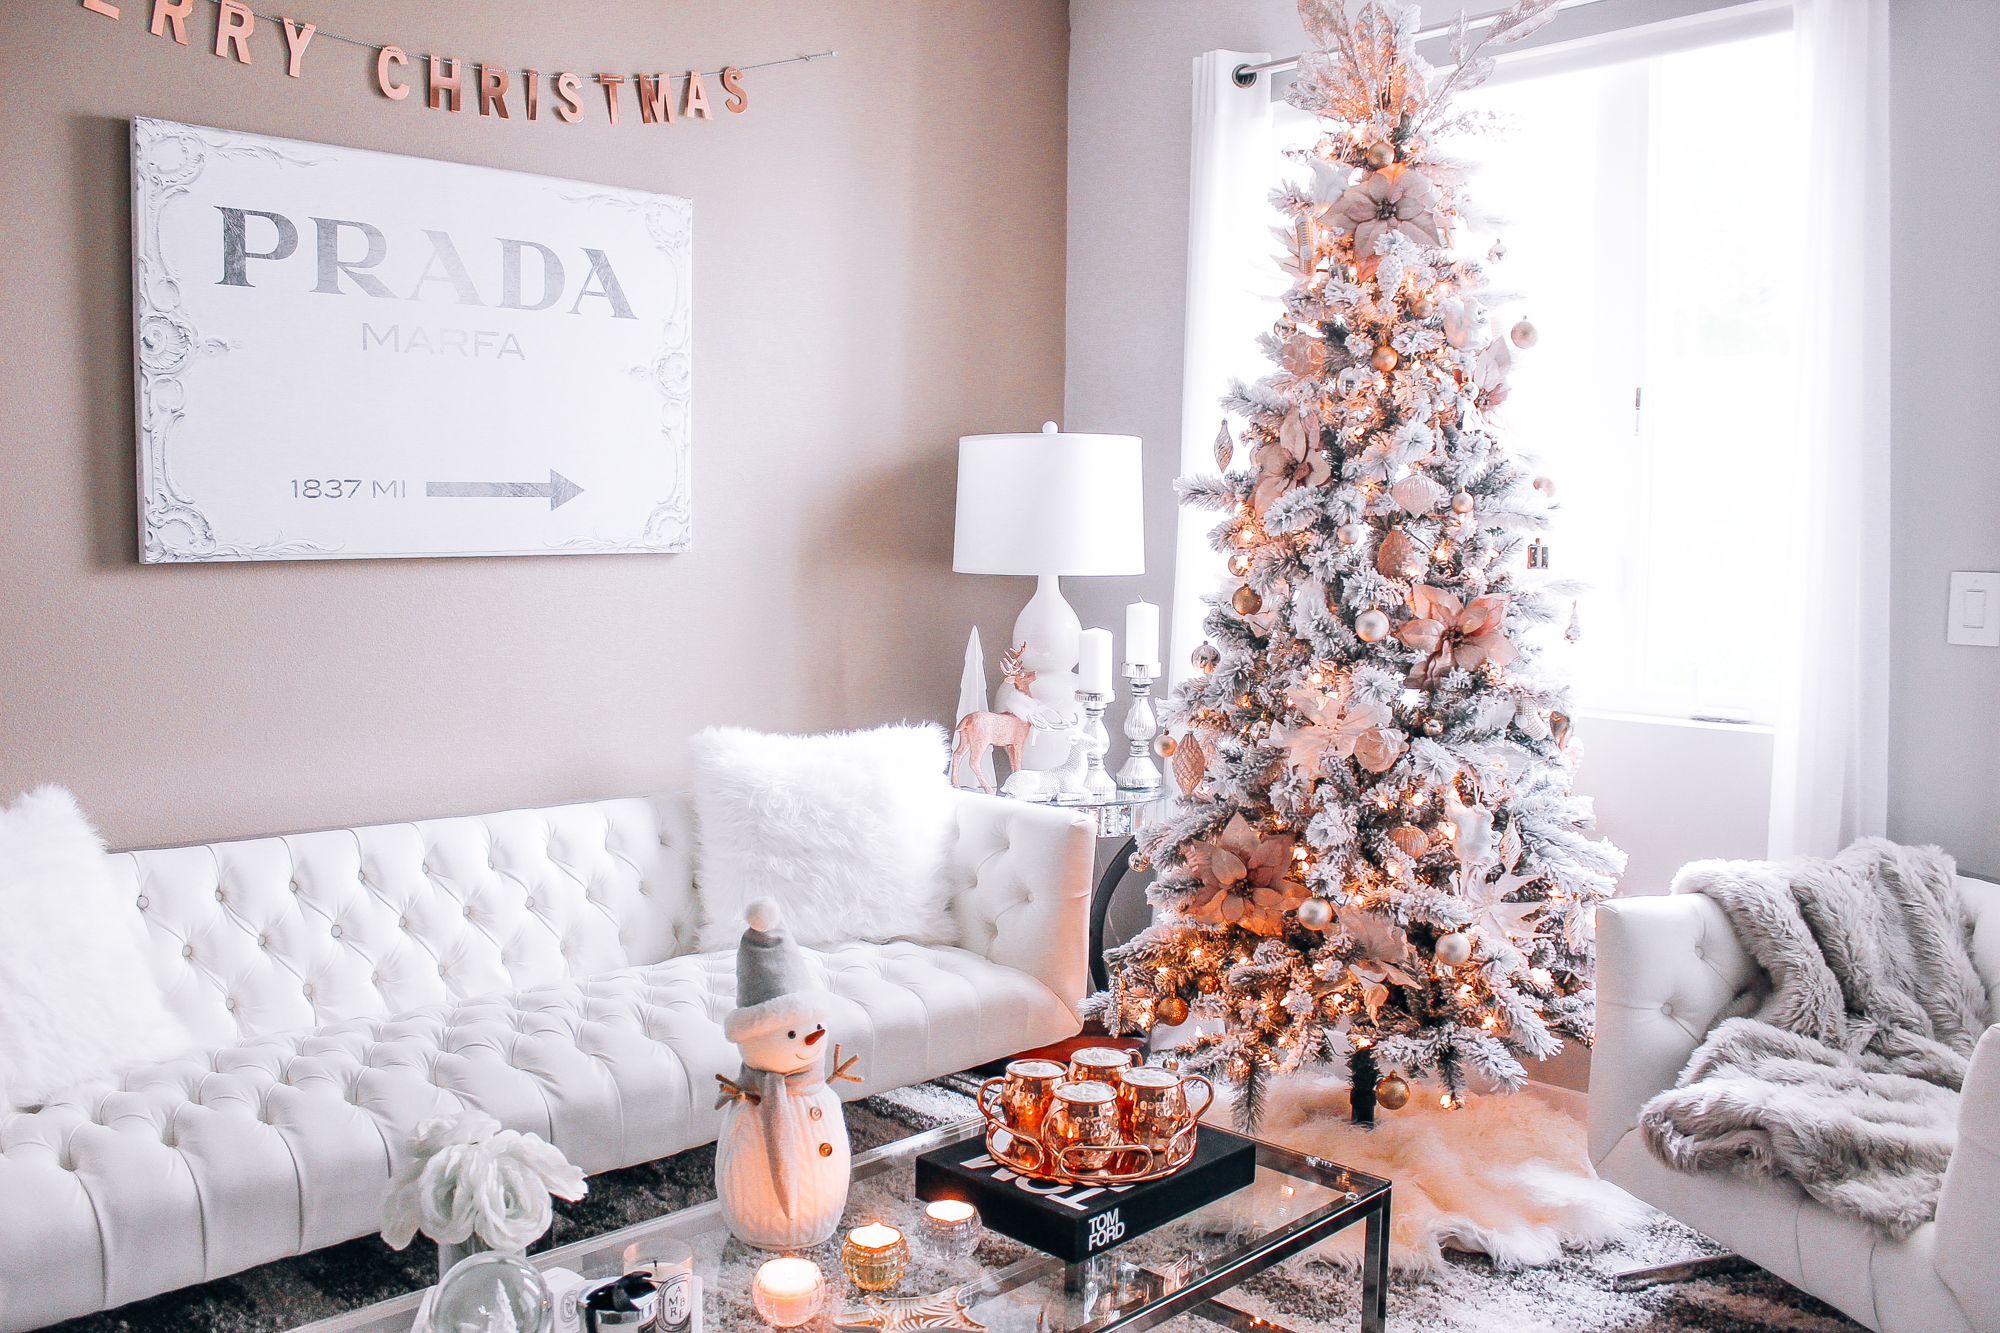 Blush Pink, Rose Gold, & White Christmas Decor